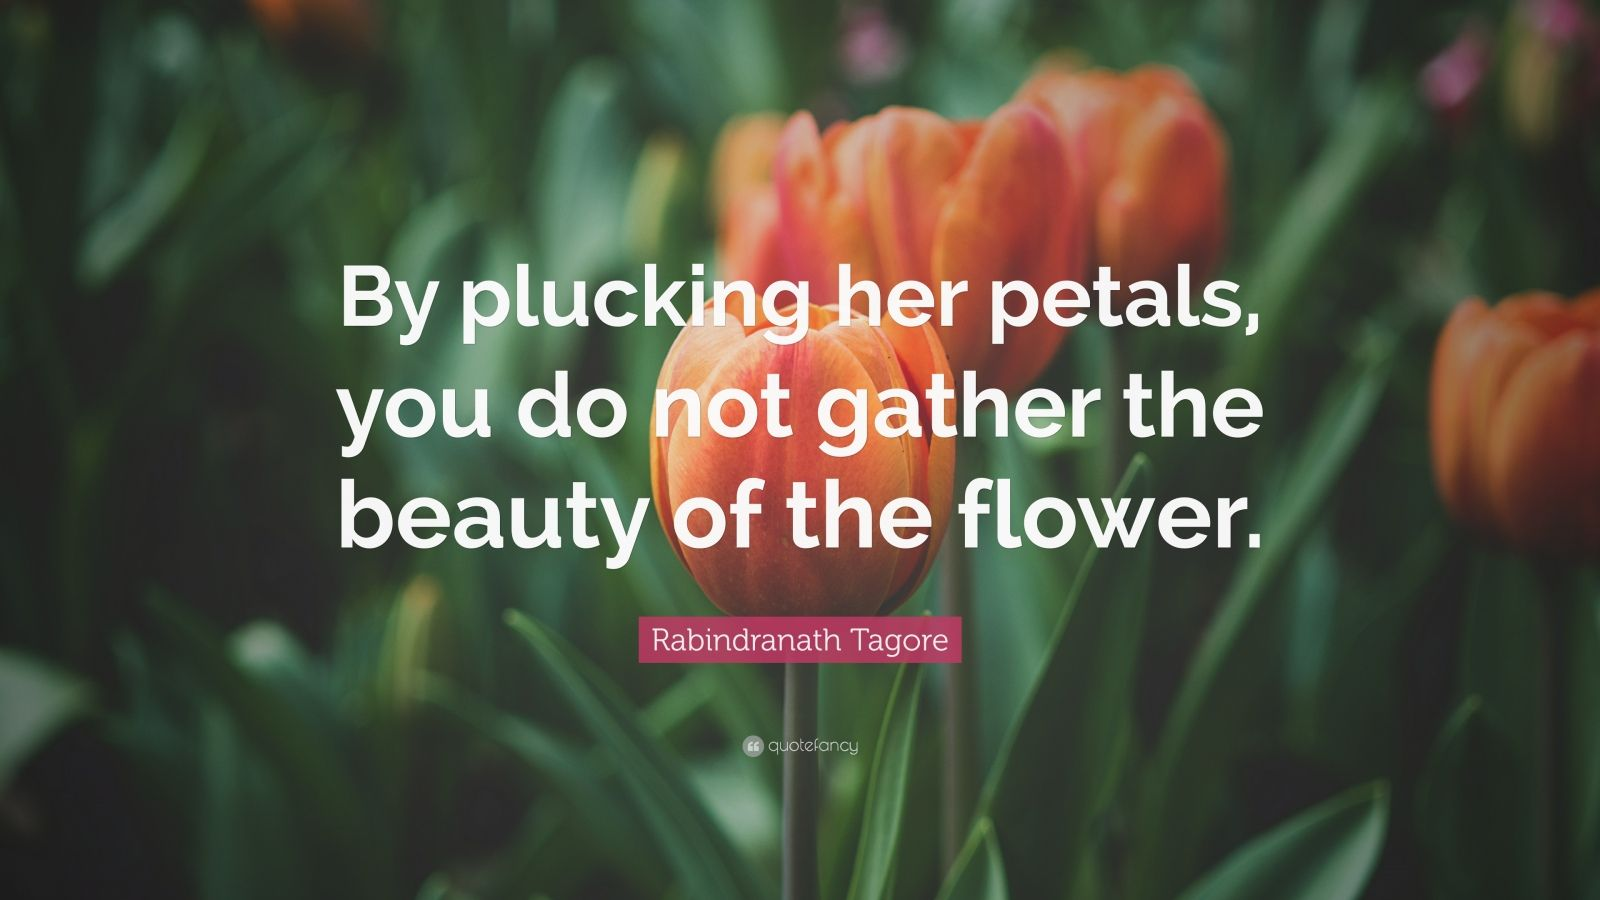 """Rabindranath Tagore Quote: """"By plucking her petals, you do not gather the beauty of the flower."""""""